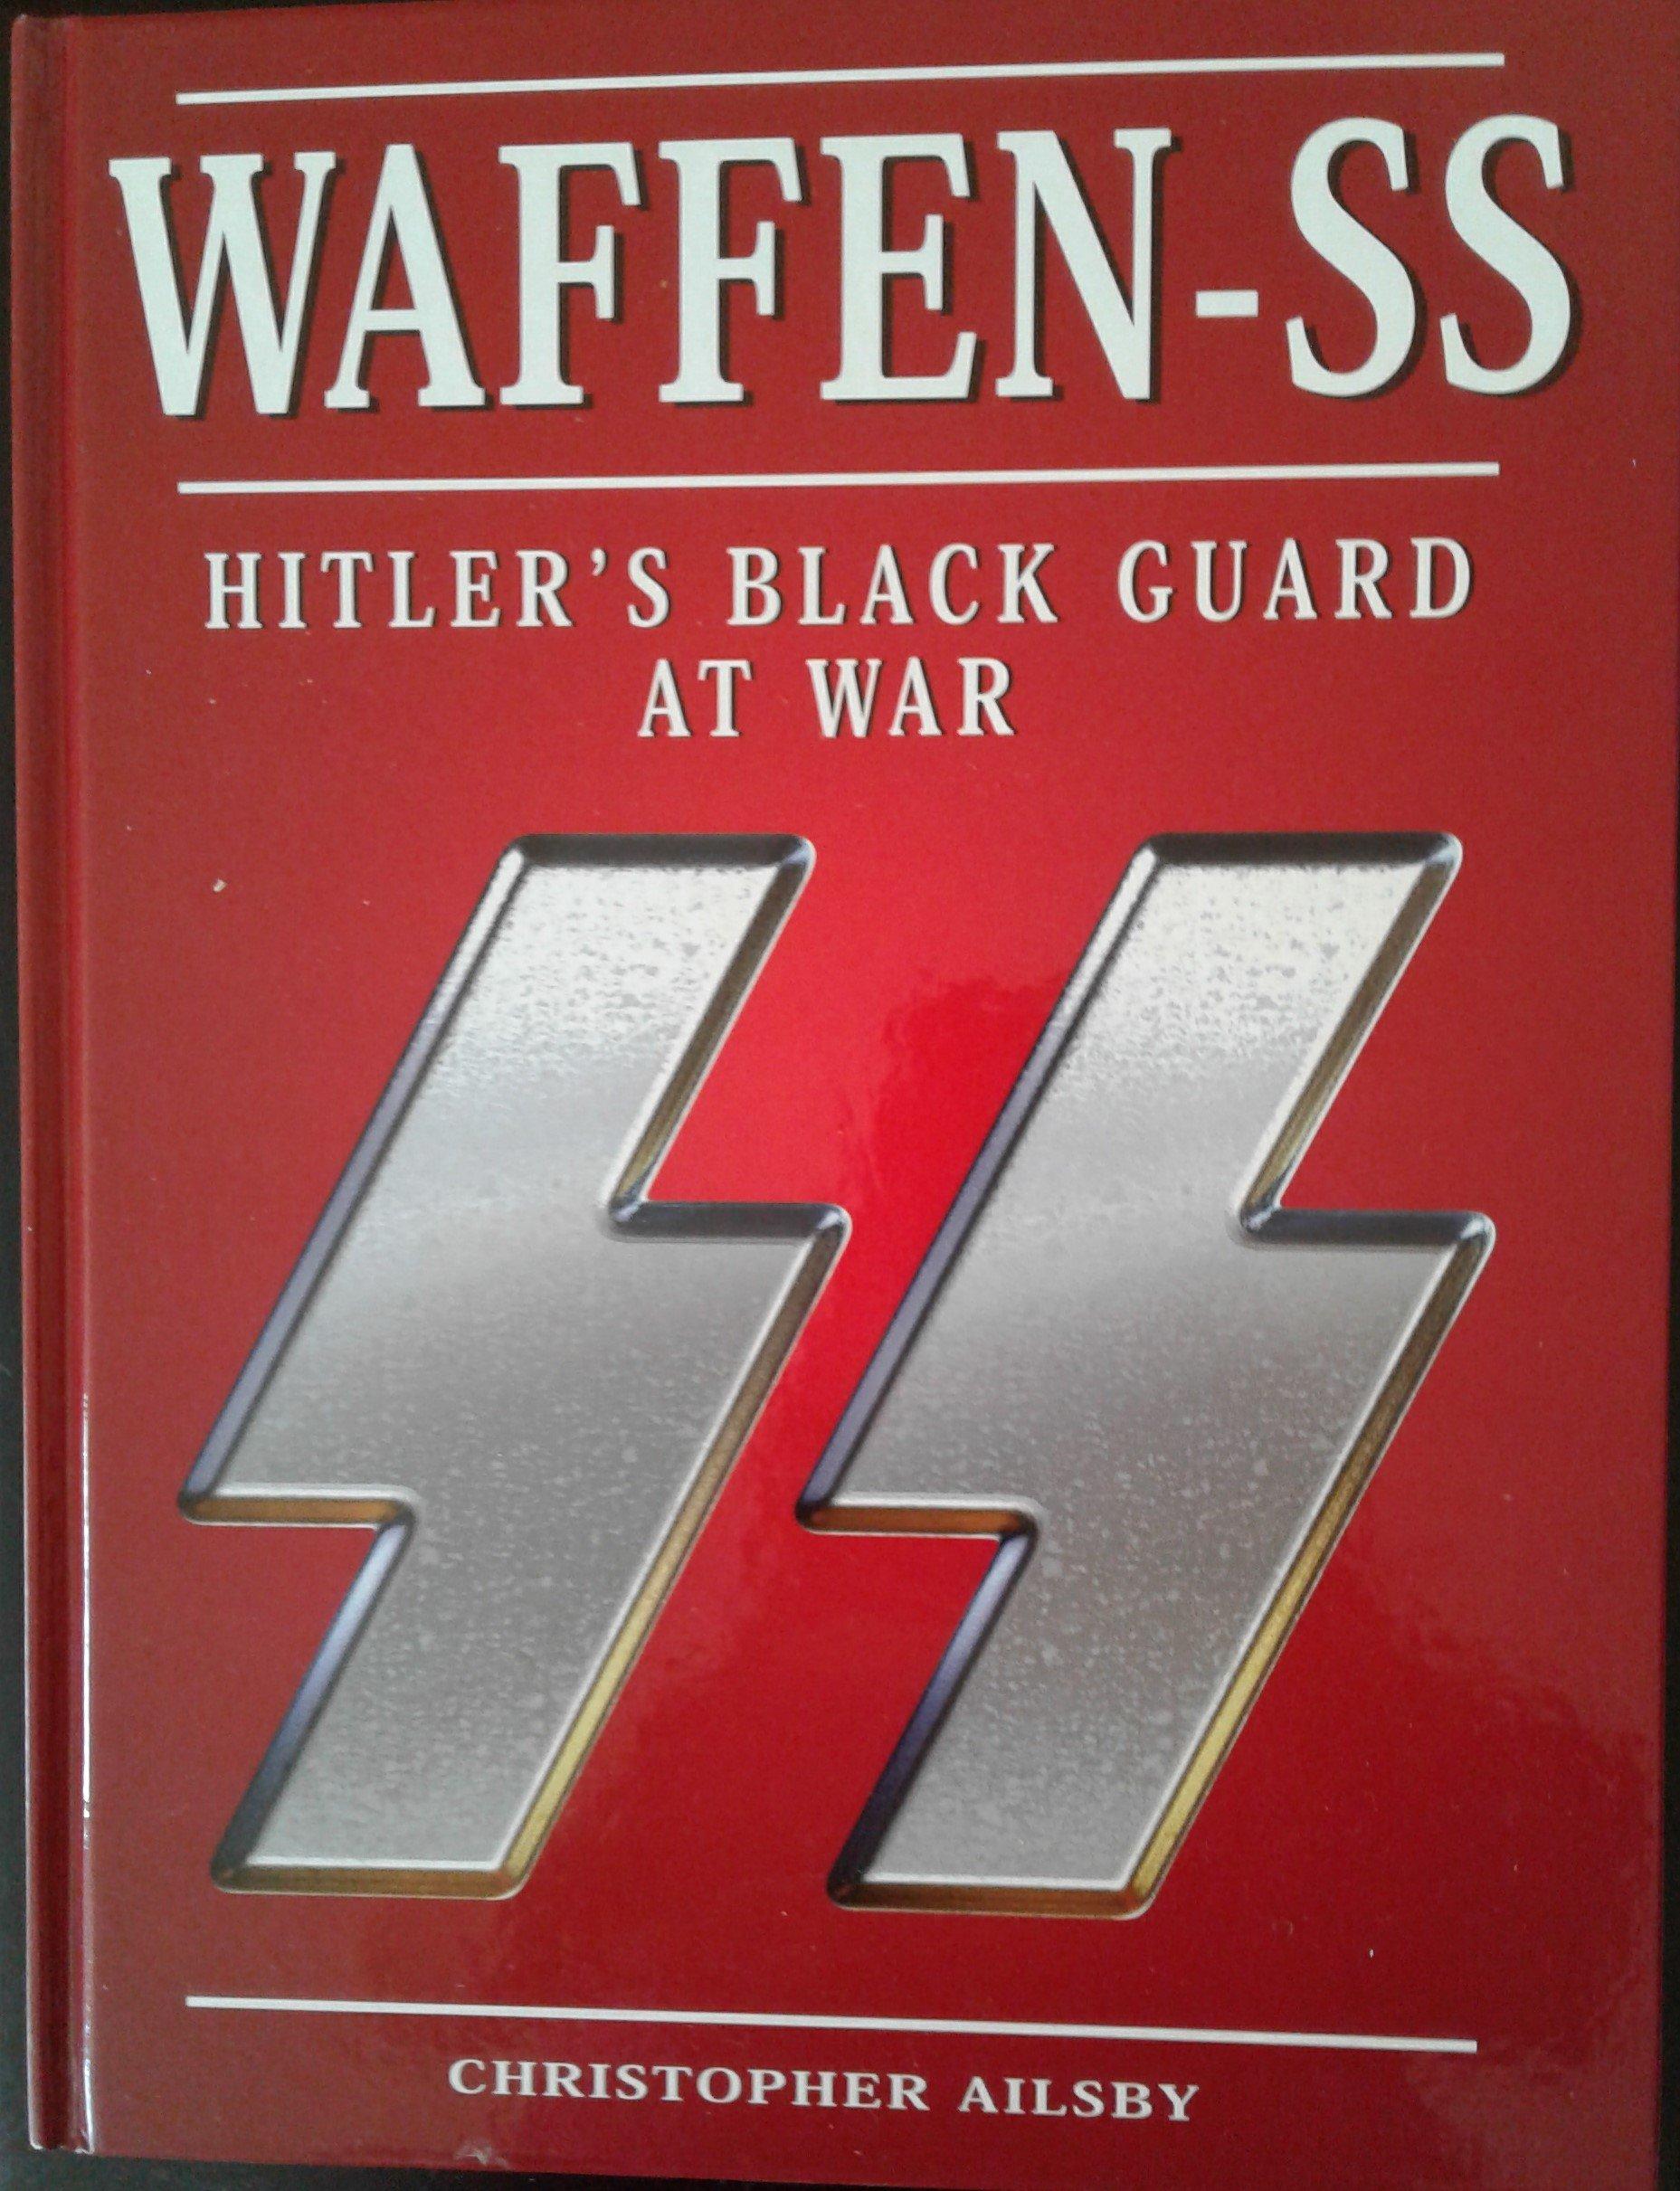 Waffen Ss Hitlers Black Guard At Work Christopher Ailsby